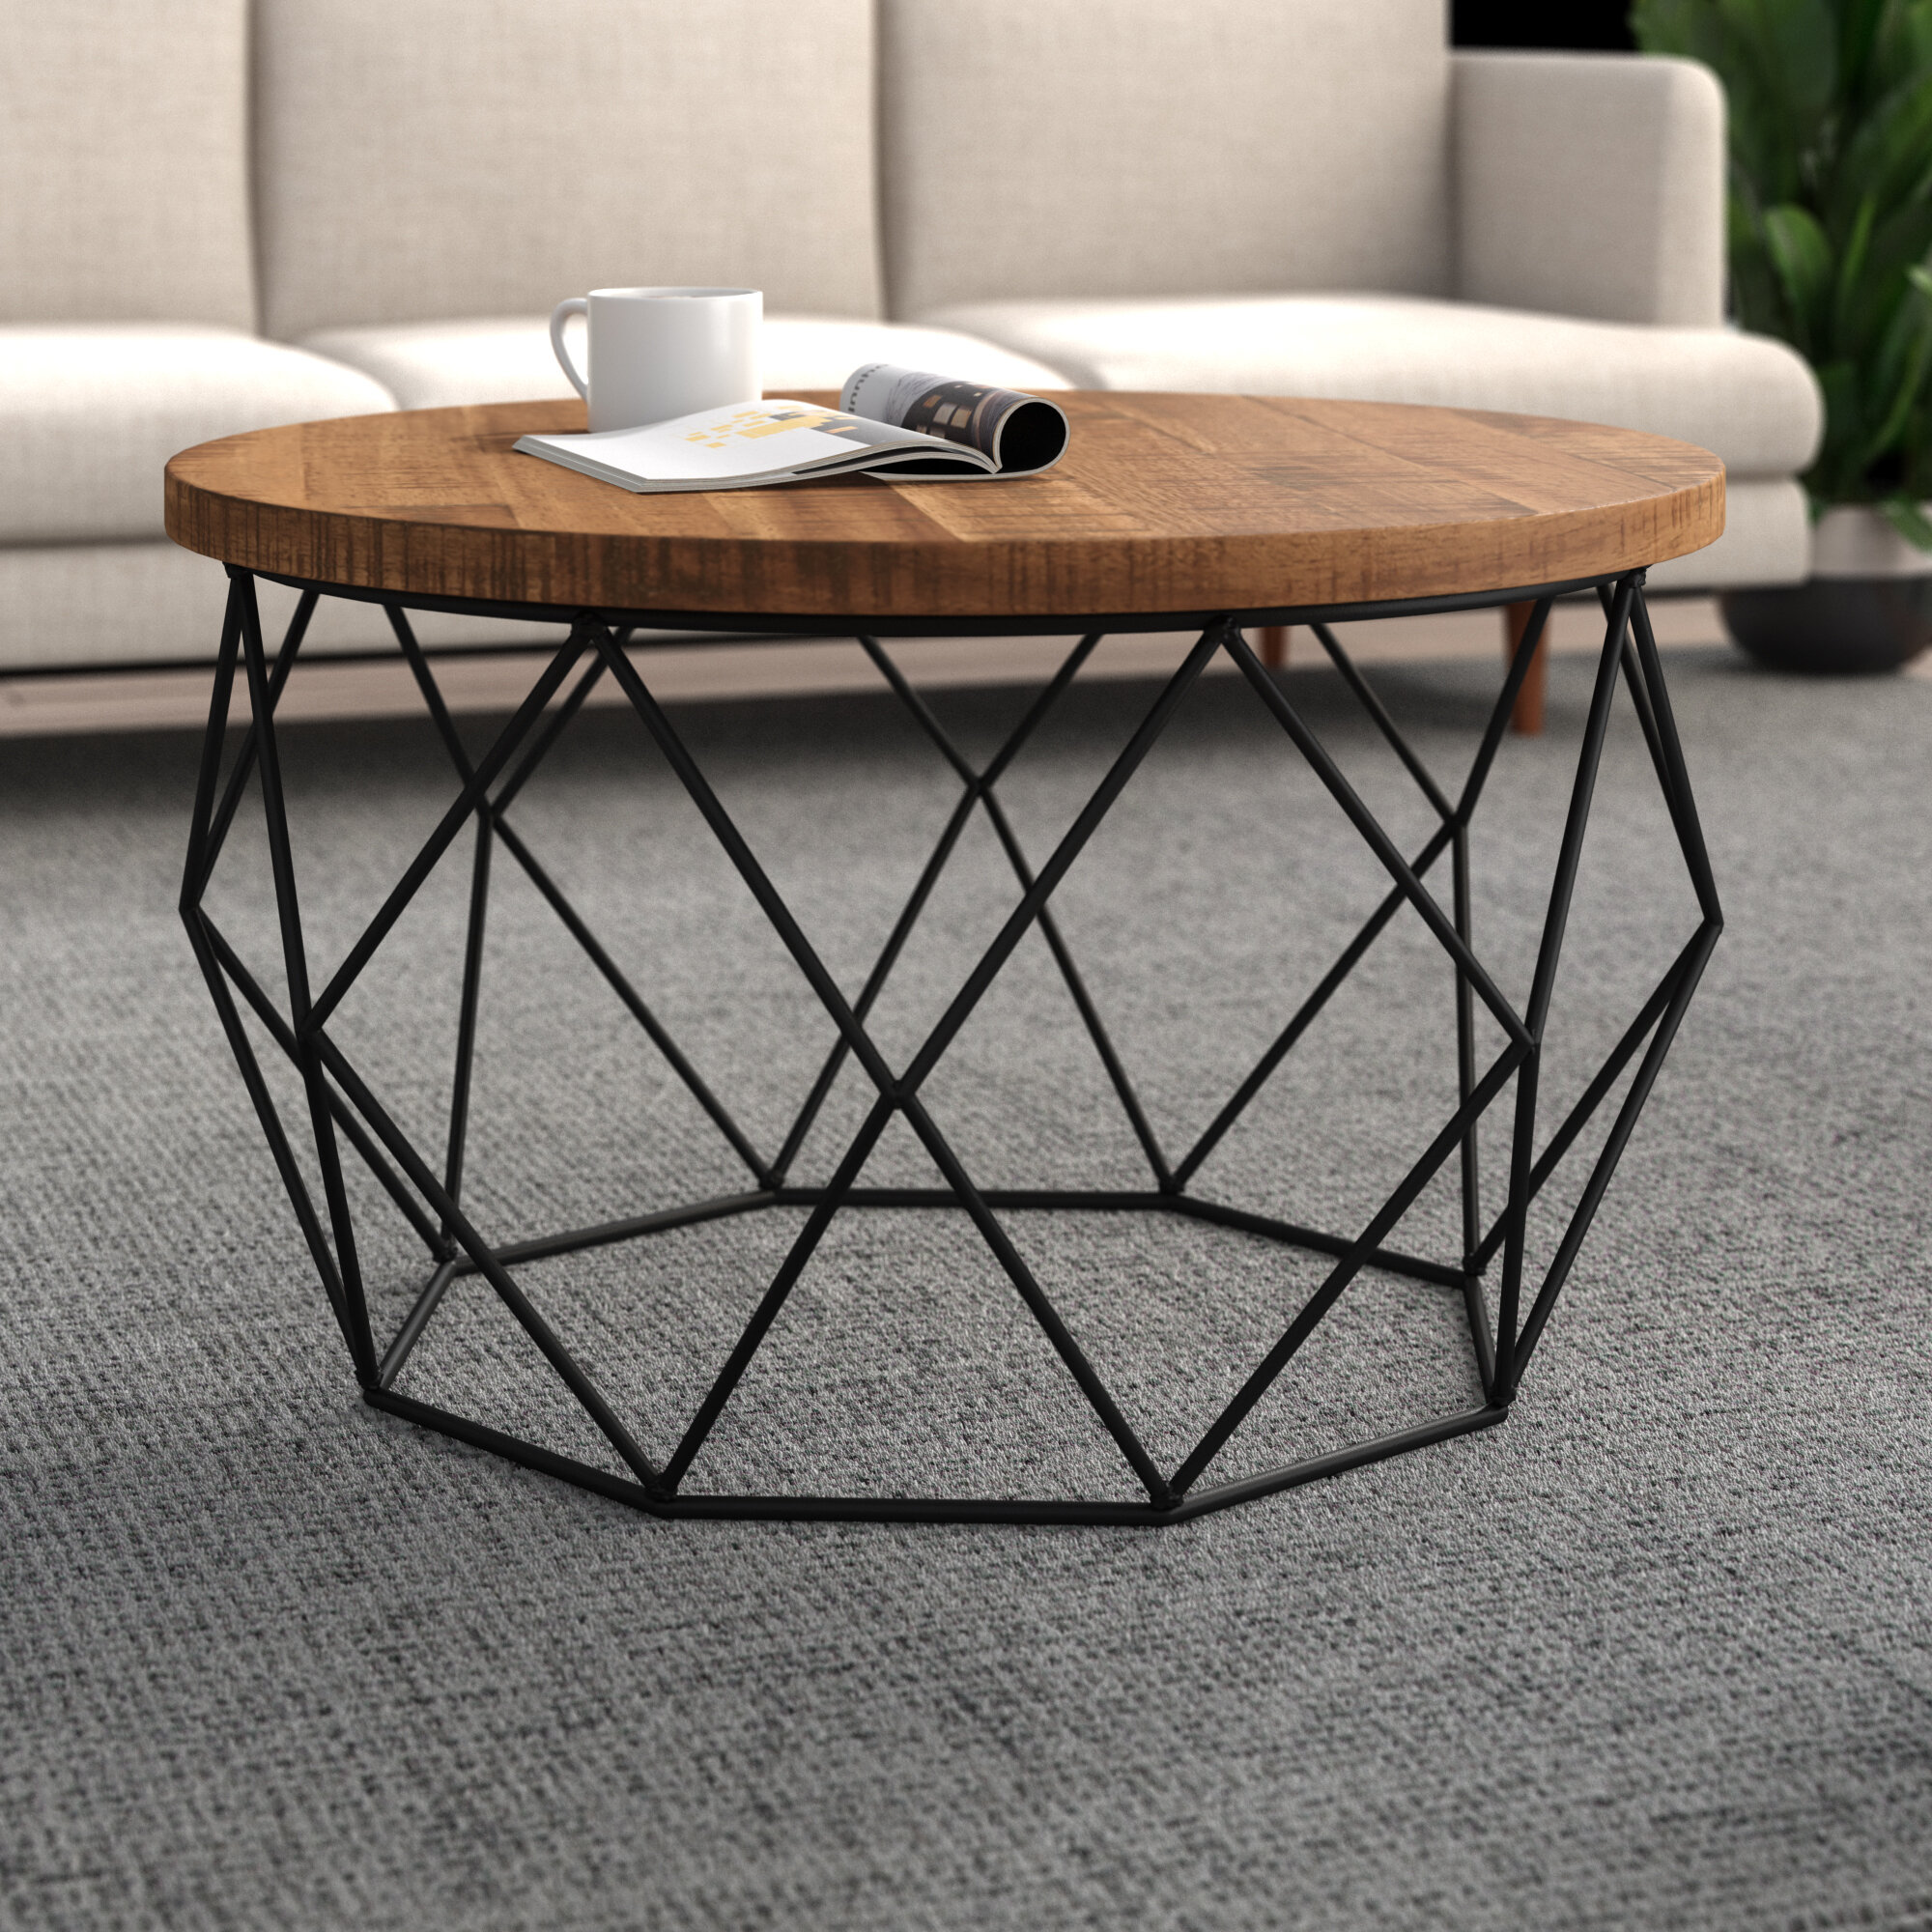 Origami Coffee Table in 2020 | Coffee table, Marble coffee table ... | 2000x2000